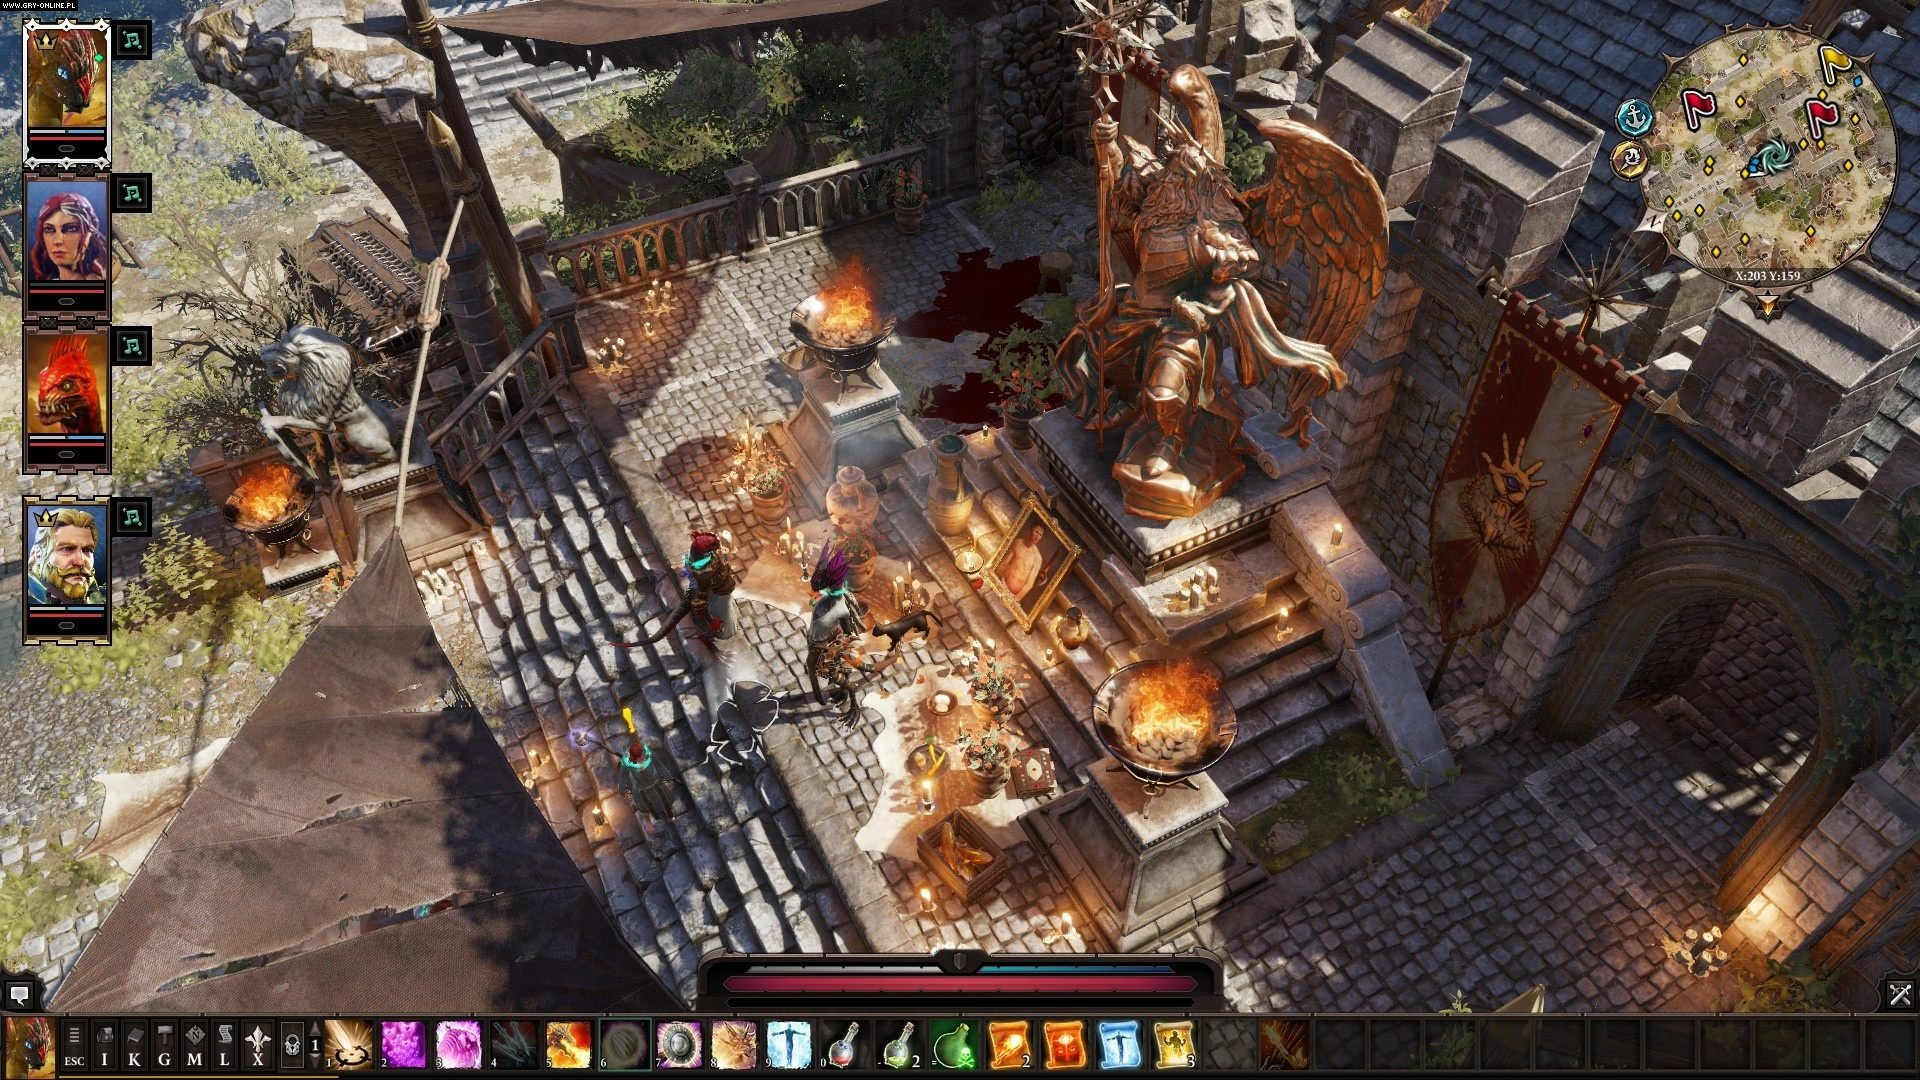 Divinity: Original Sin II - Definitive Edition PC, PS4, XONE Games Image 39/304, Larian Studios